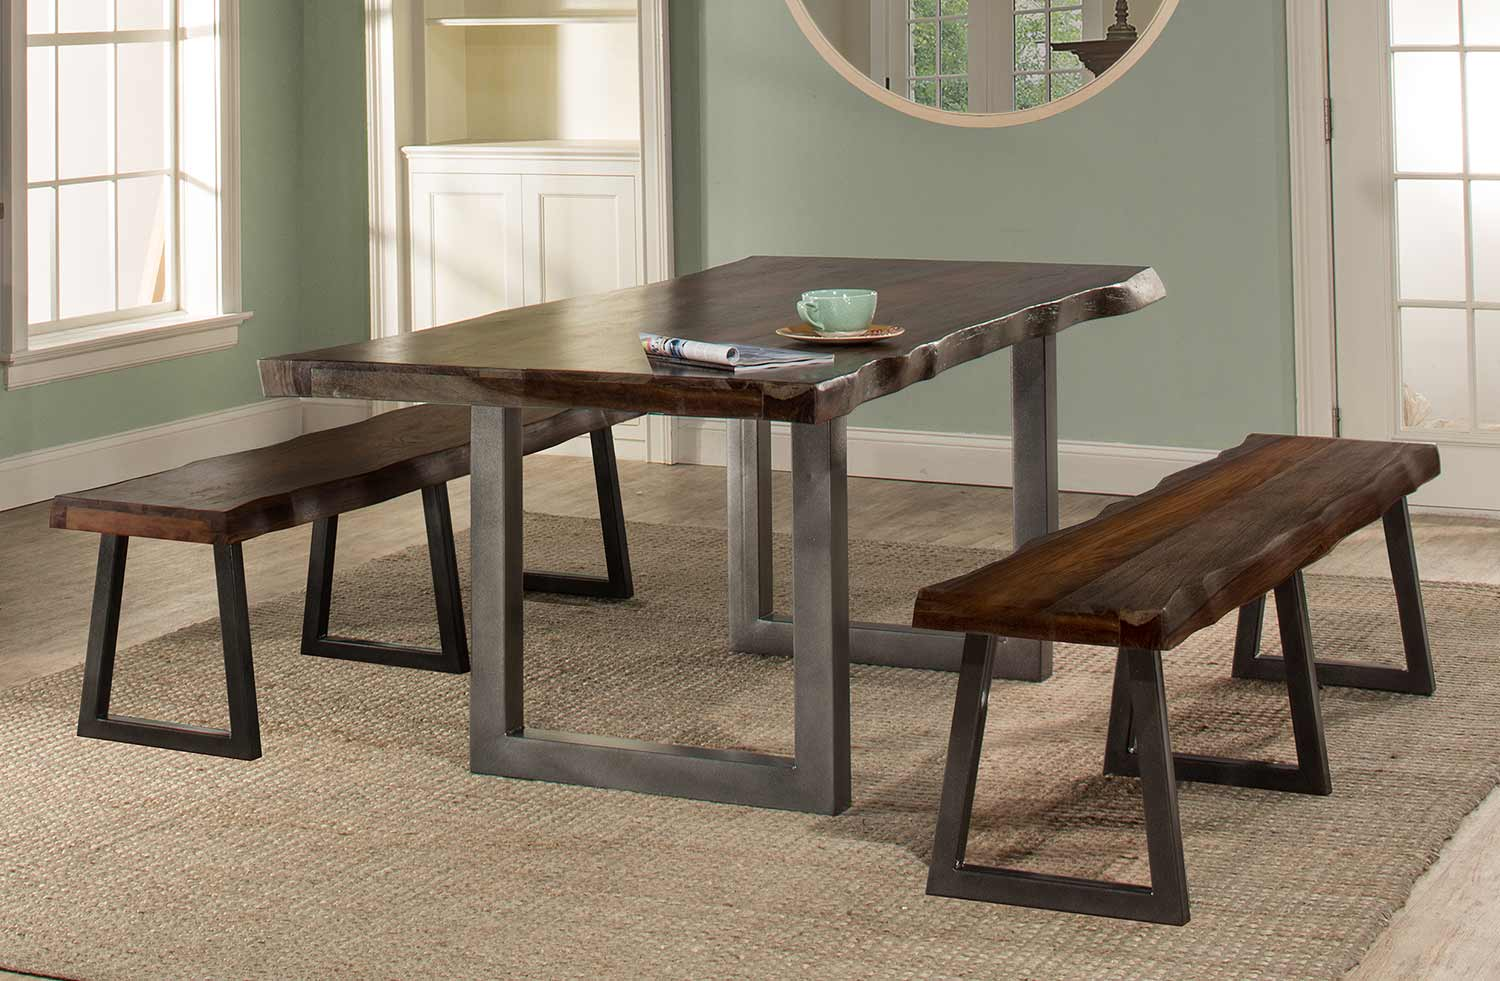 Hillsdale Emerson 3-Piece Rectangle Dining Set with Two Benches - Gray Sheesham